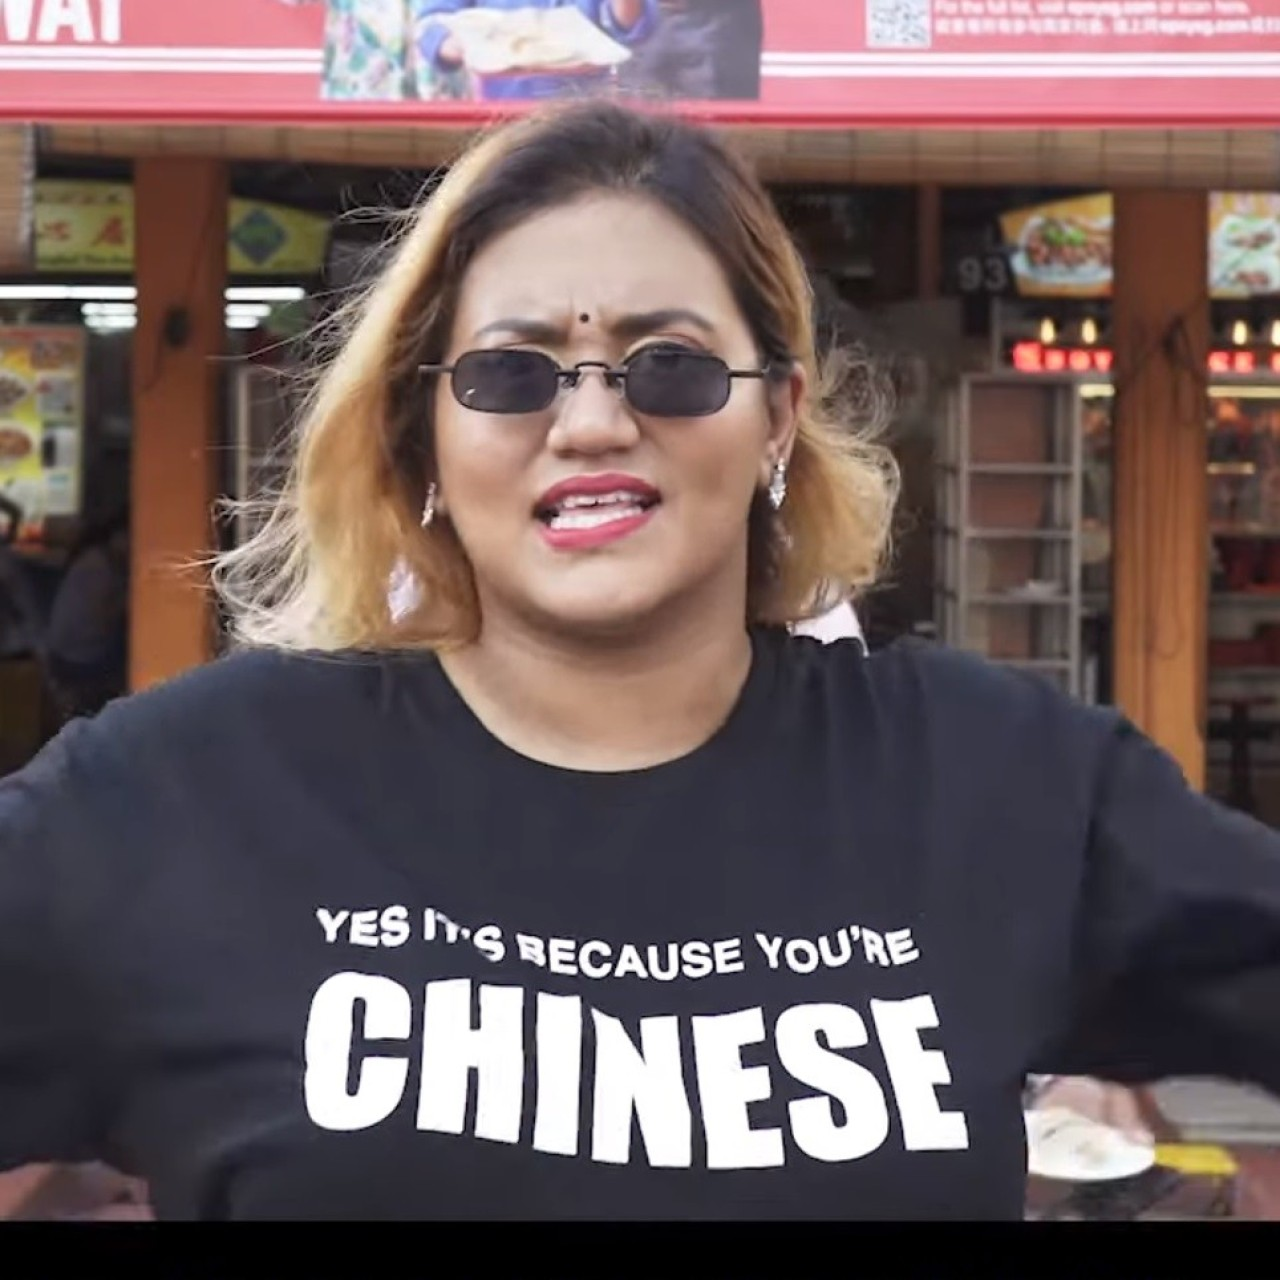 Offensive' Singapore rap video by Preetipls attacking